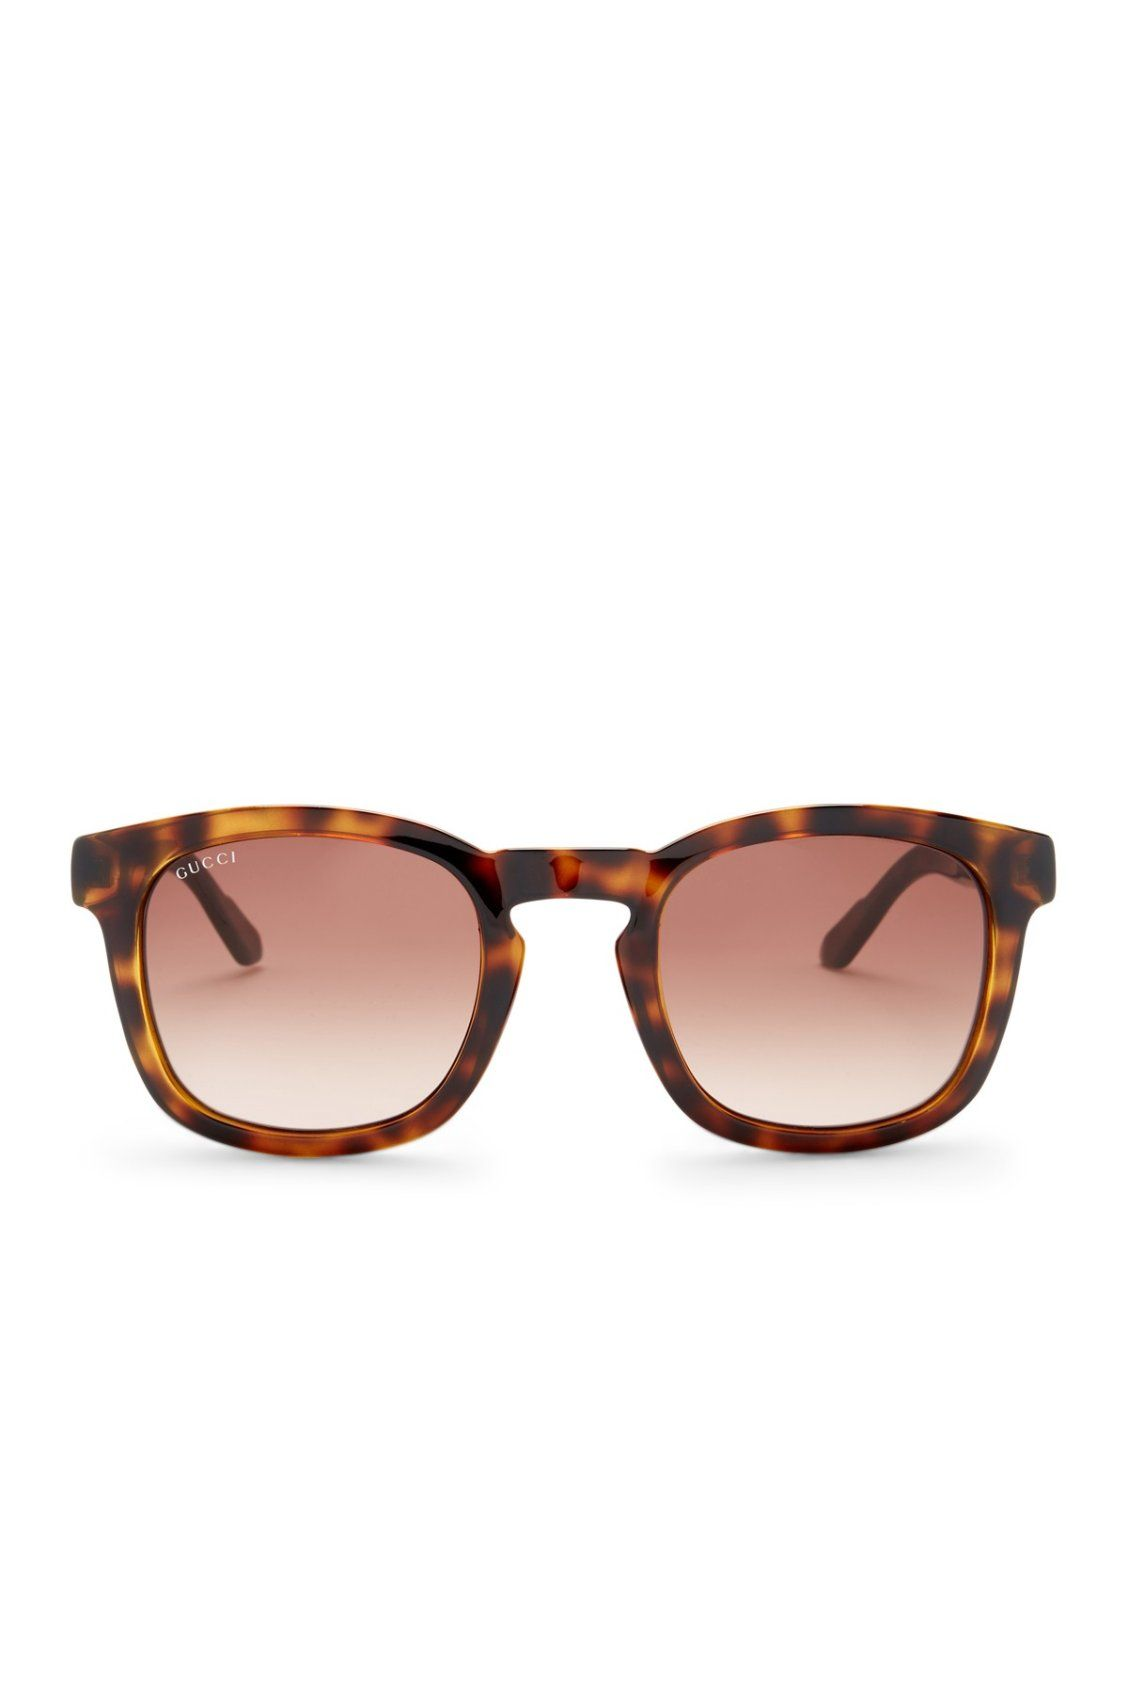 7615d34c2a GUCCI Women s Rounded Sunglasses